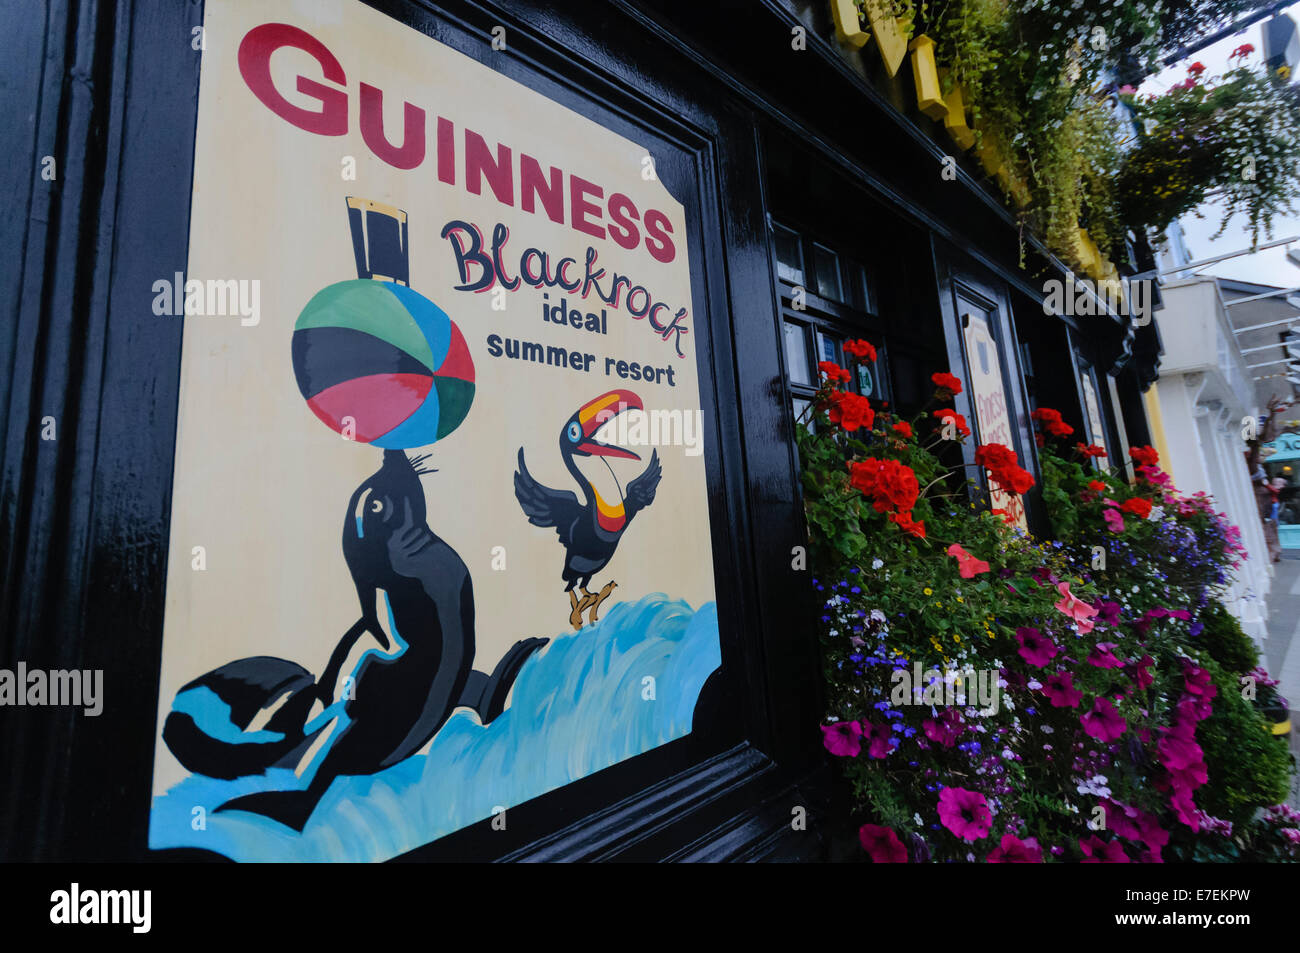 Sign for Guinness outside a pub in Blackrock, Ireland - Stock Image